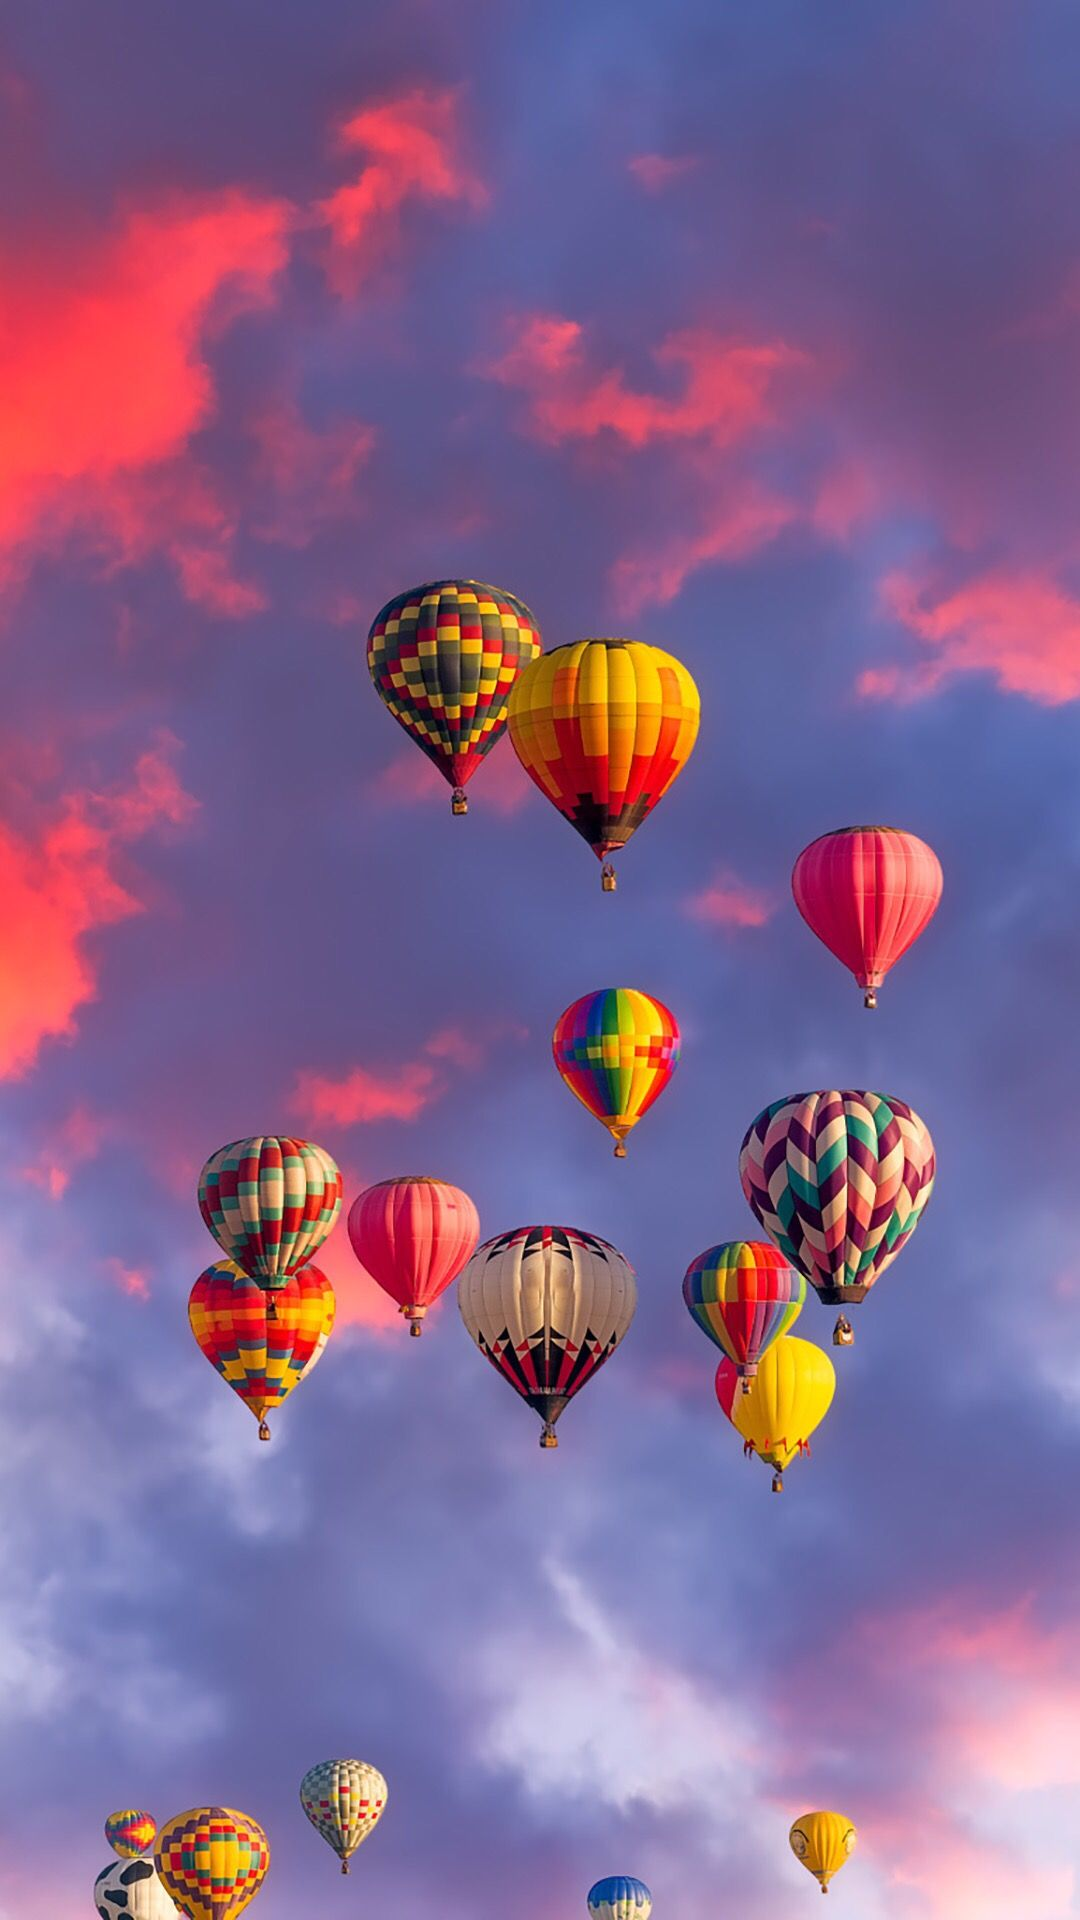 Pin by Jann💗 on Balloons in 2019 Hot air balloon